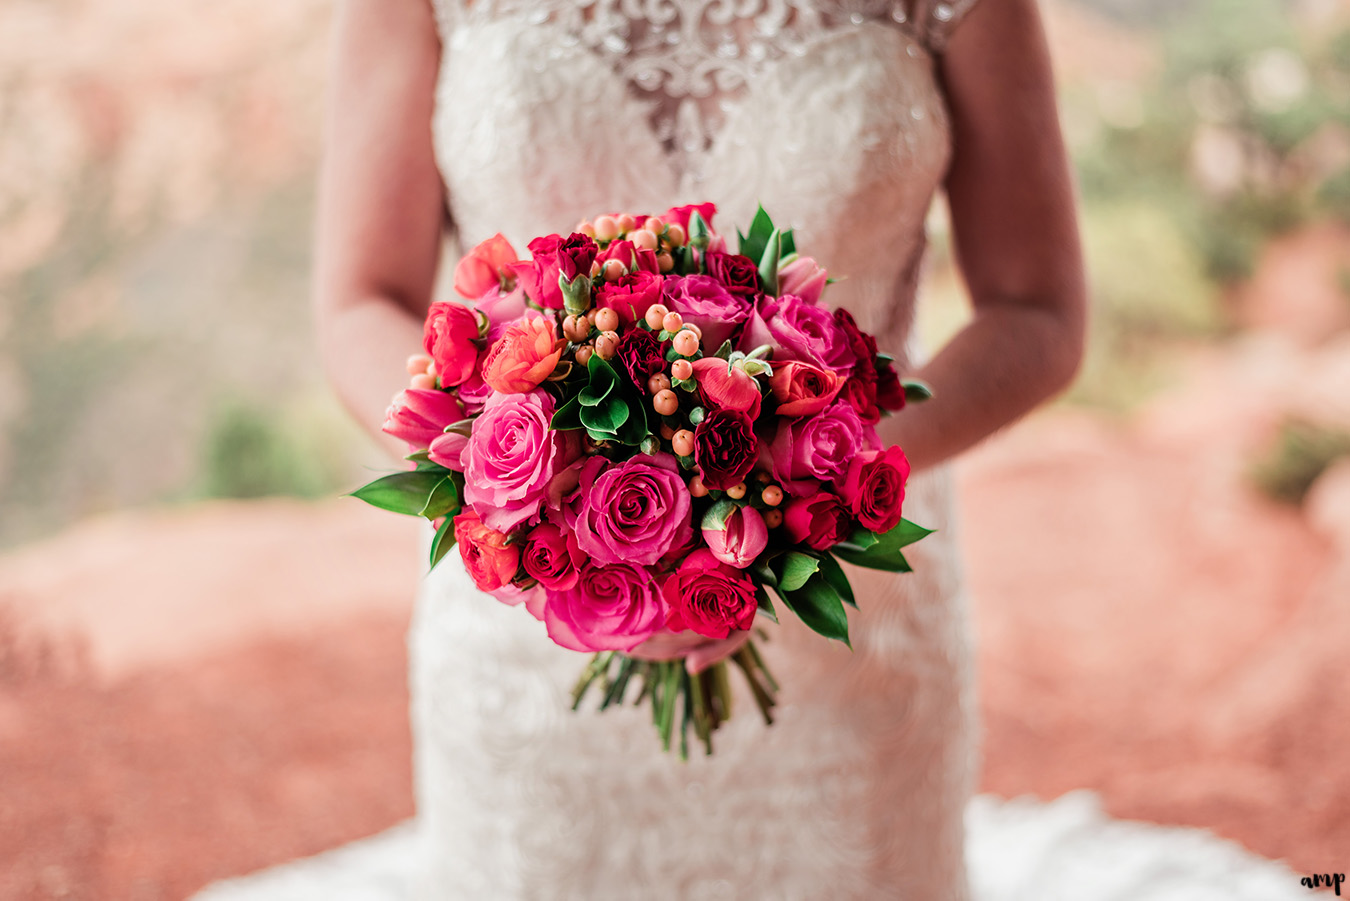 Spring wedding bouquet by Bride & Bloom Design in Grand Junction